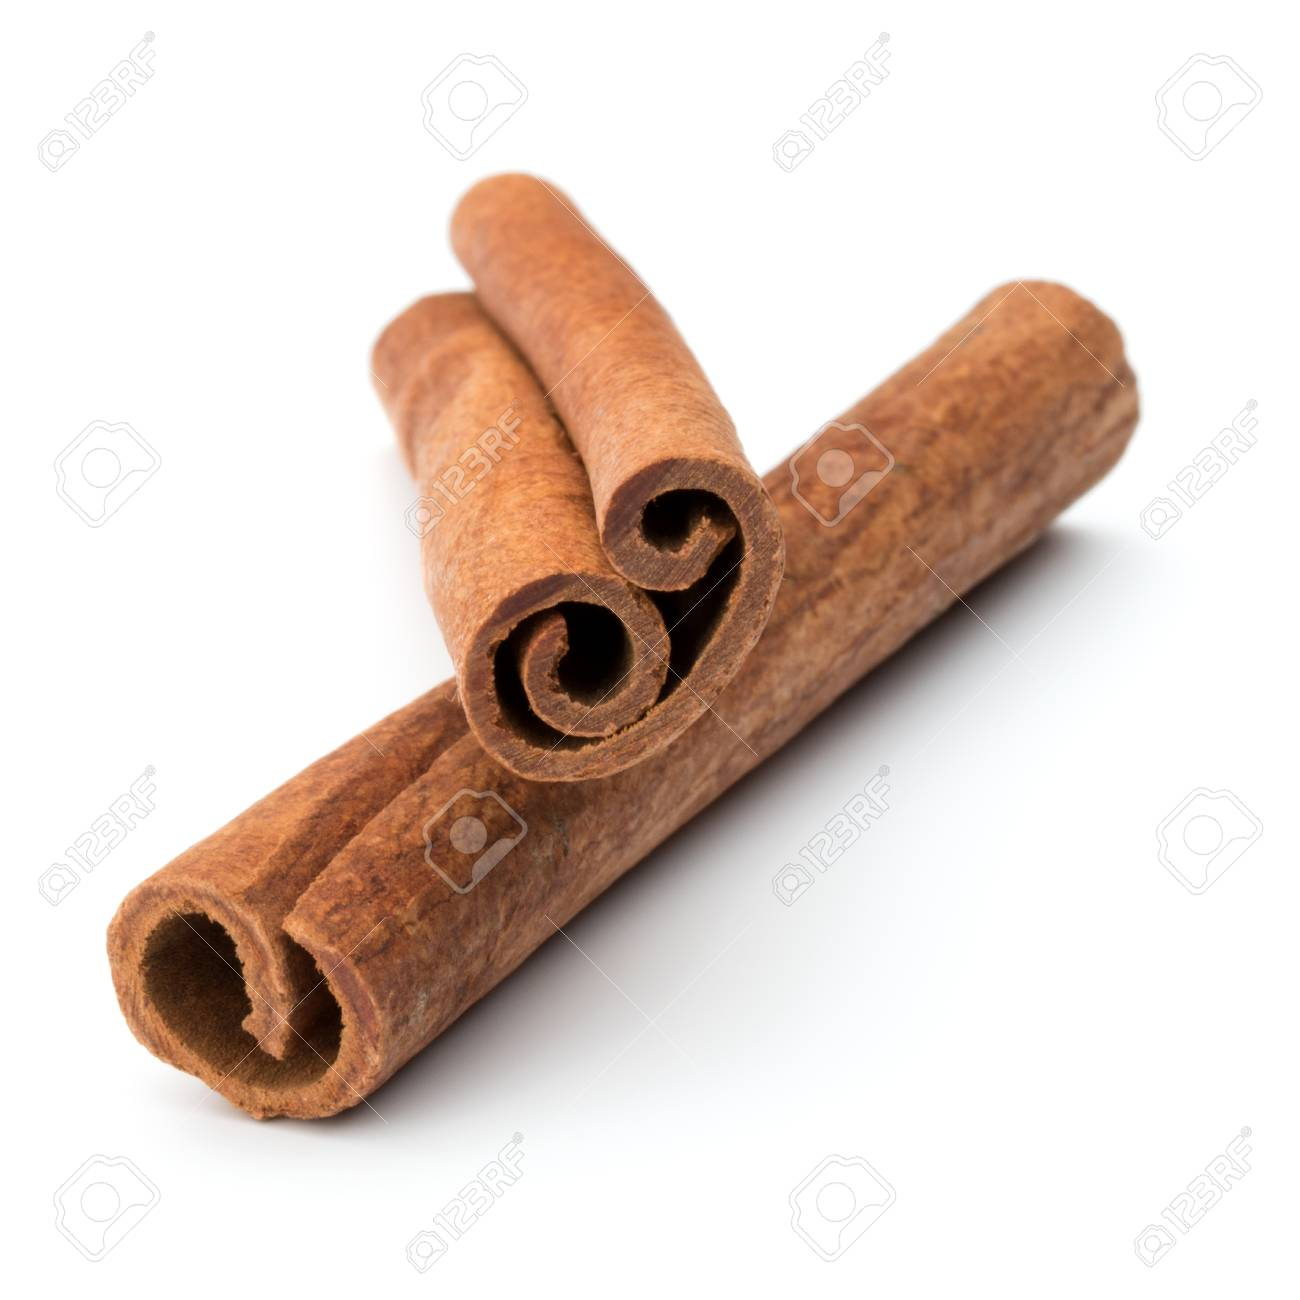 cinnamon stick spice isolated on white background closeup - 53853554